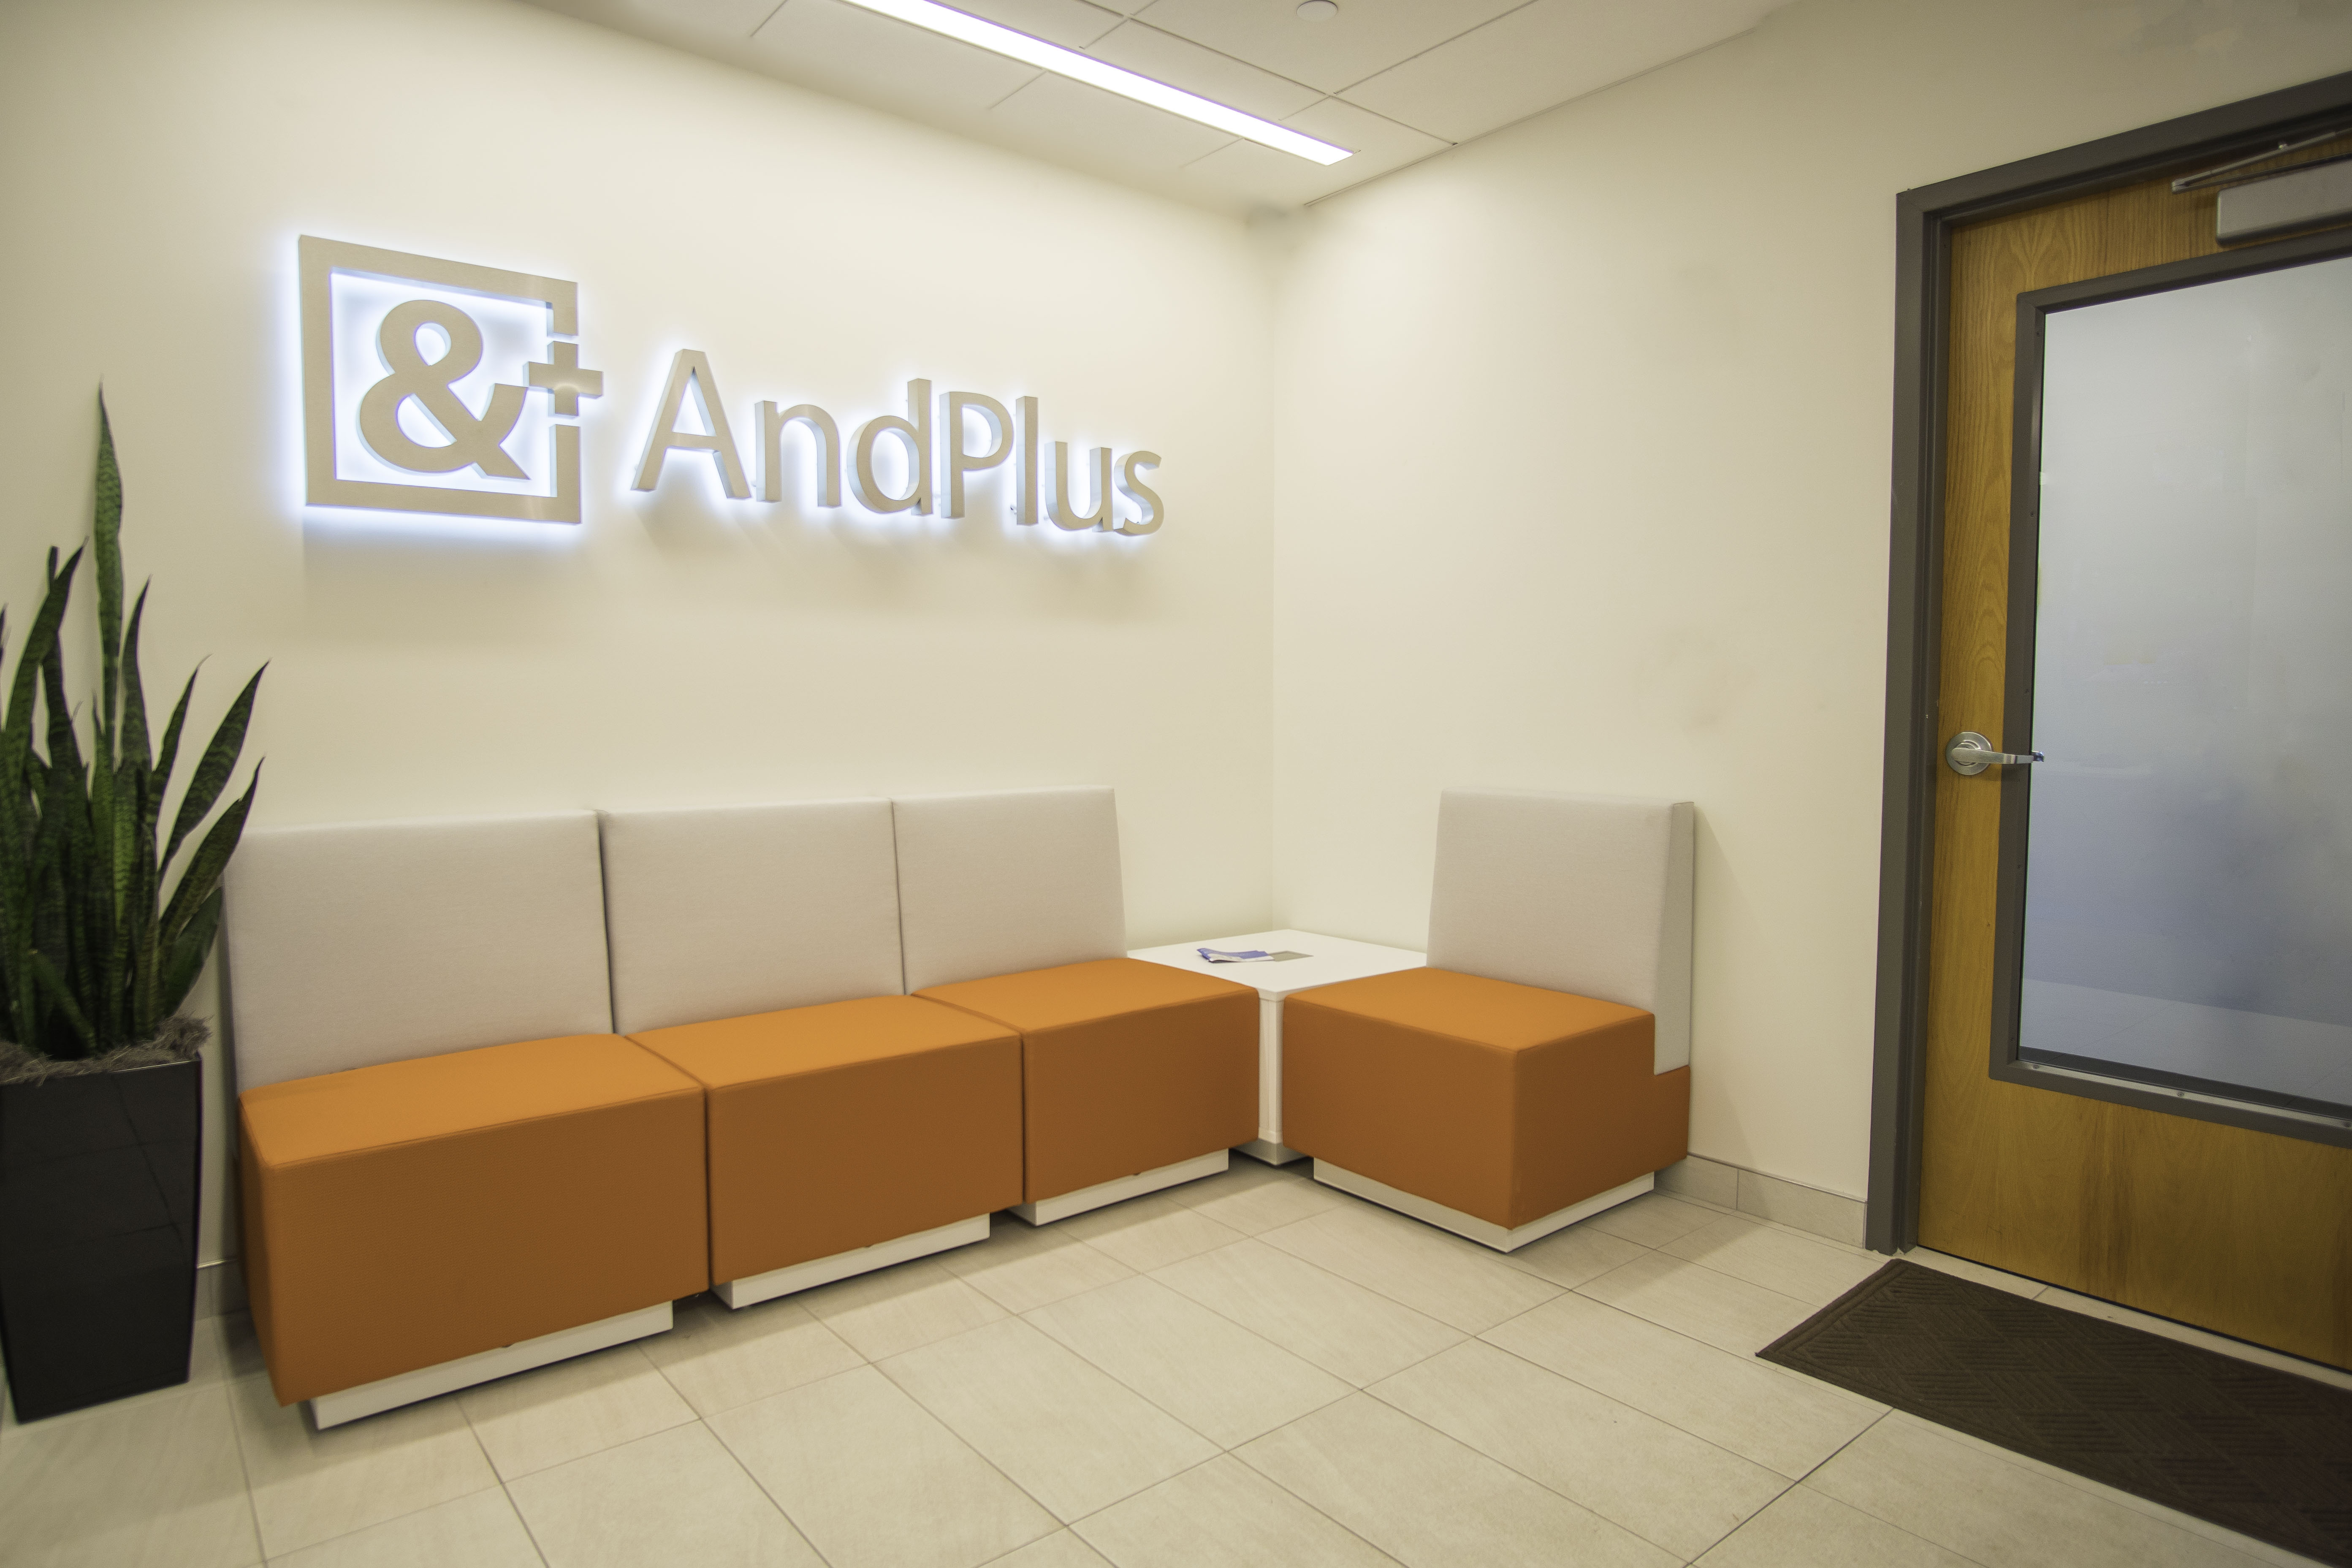 AndPlus - Best Web and Mobile App developers in Boston